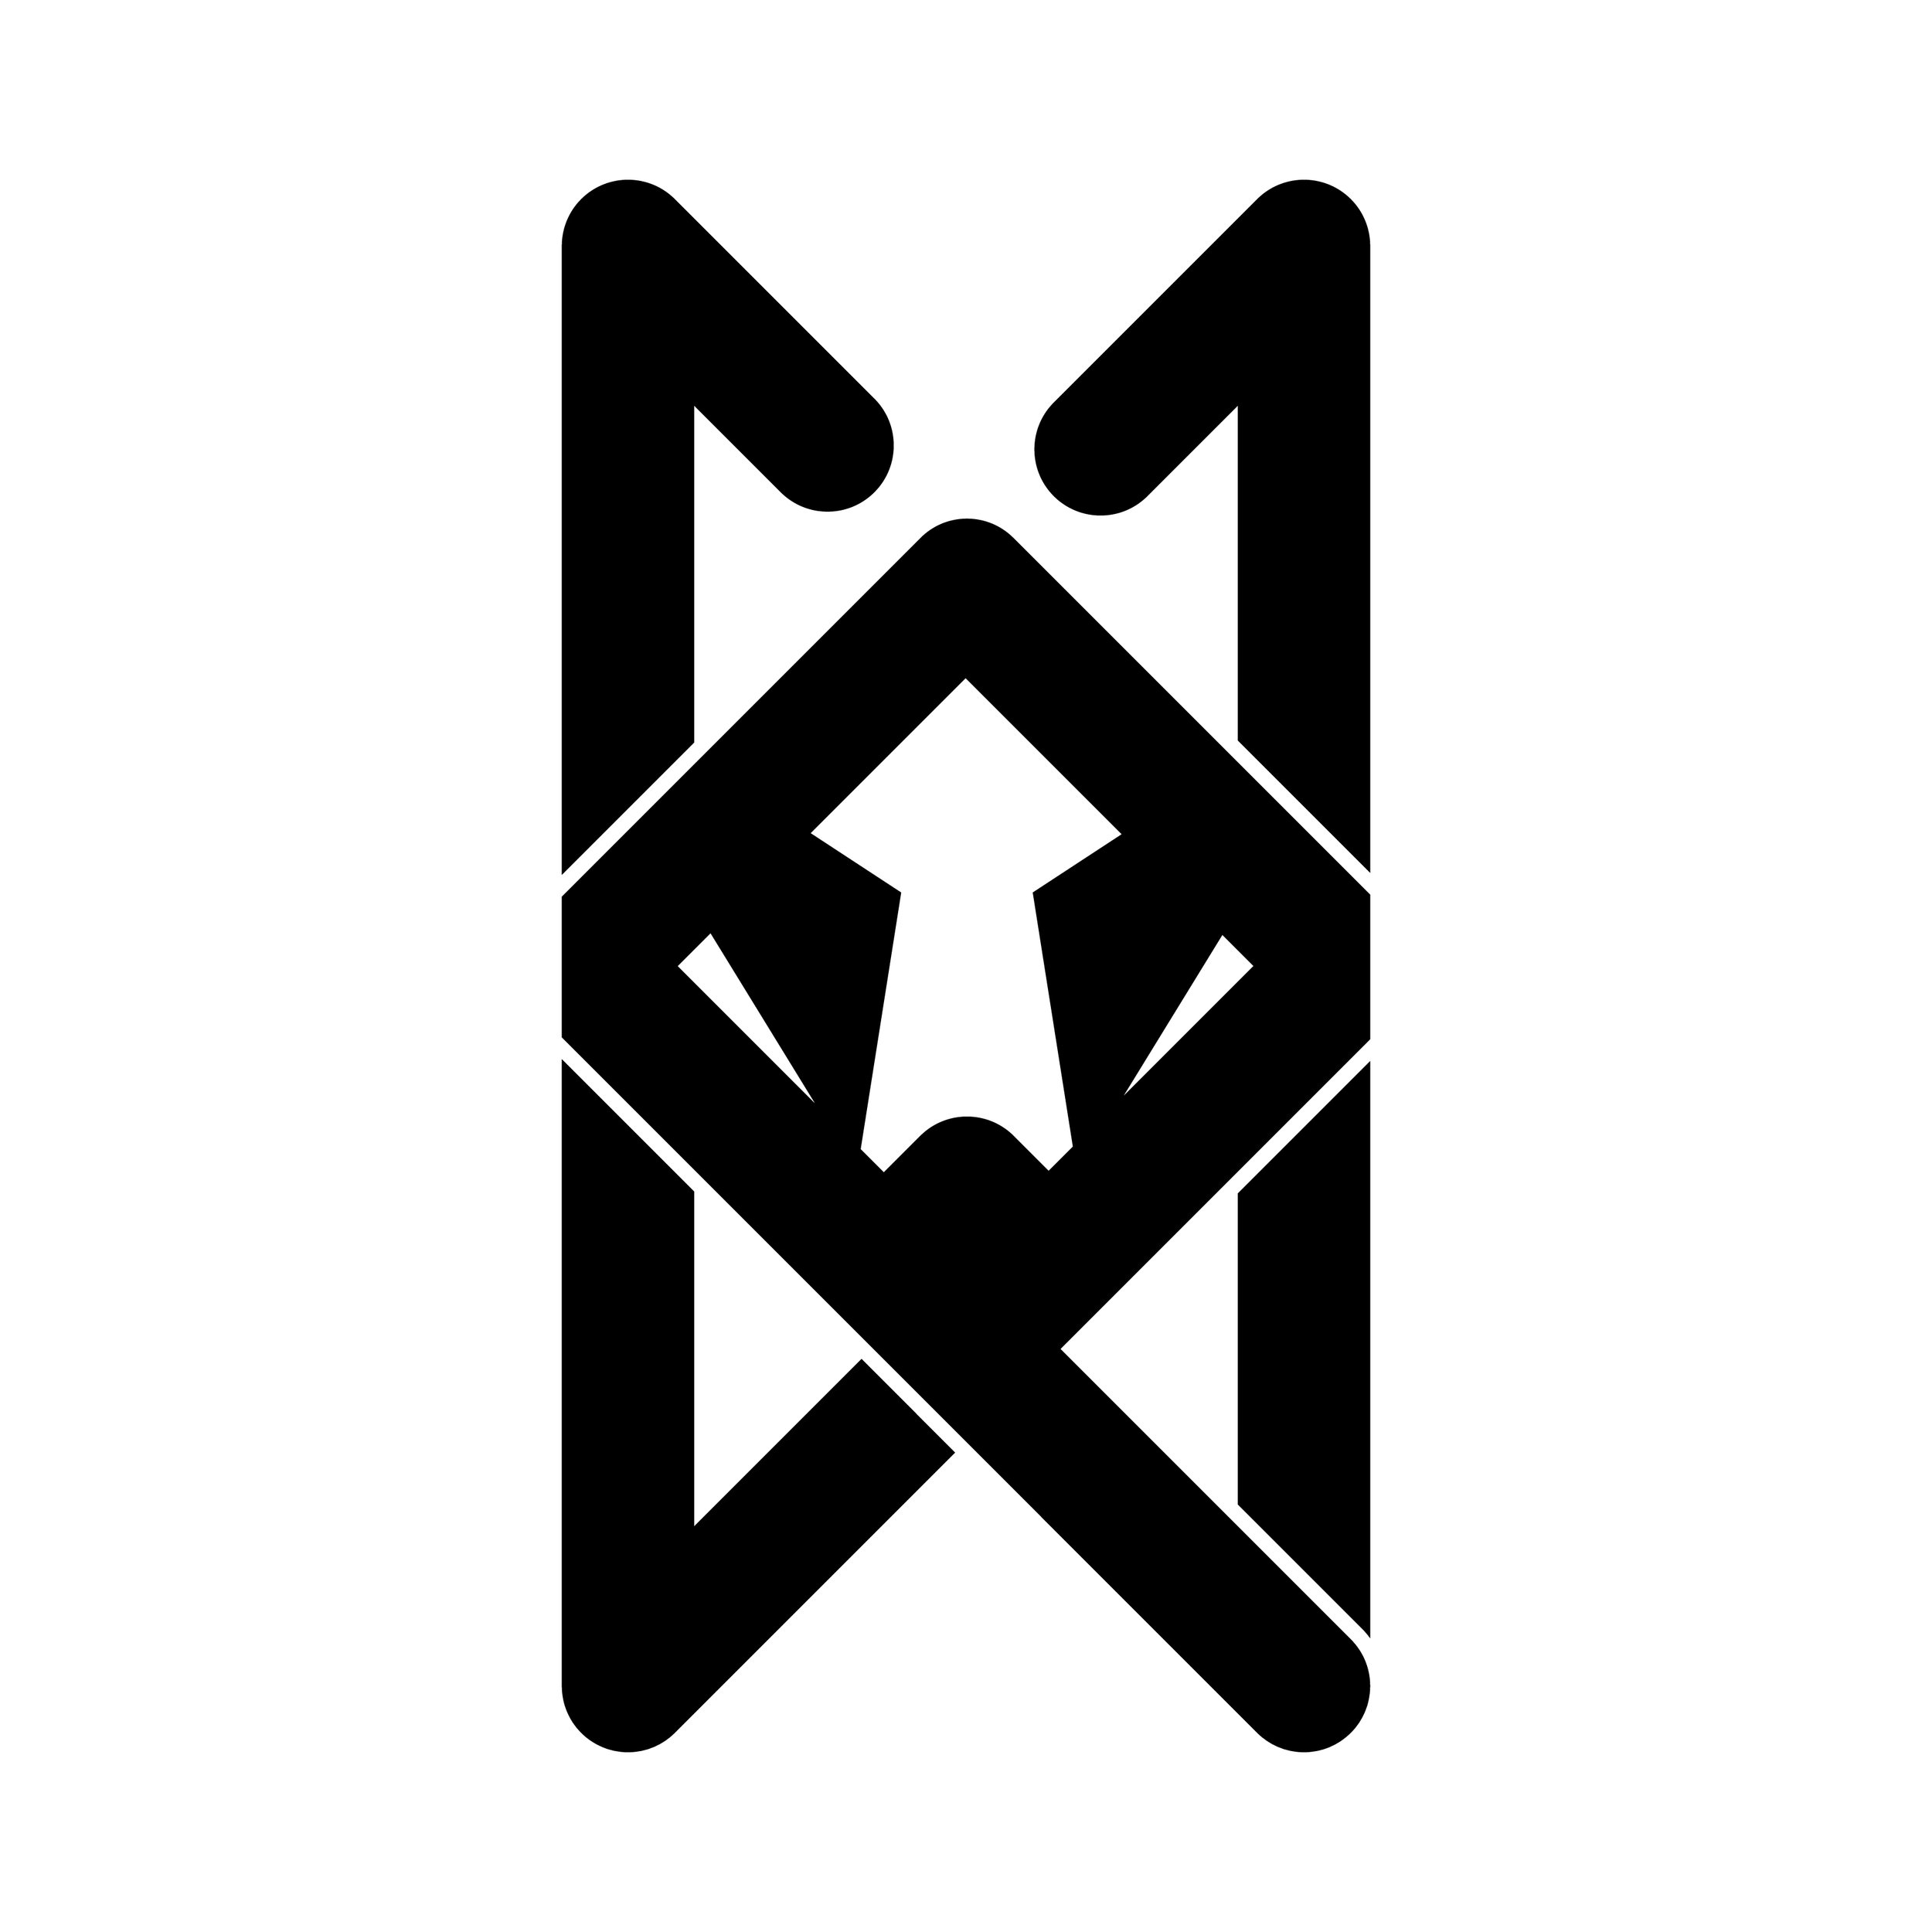 The Wolfpack Brand Icon - After dozens of thumbnails, sketches, trials and errors, the Wolfpack (WP) icon was created.  The four corners (paws and ears) represent the four corners/members of the Wolfpack.